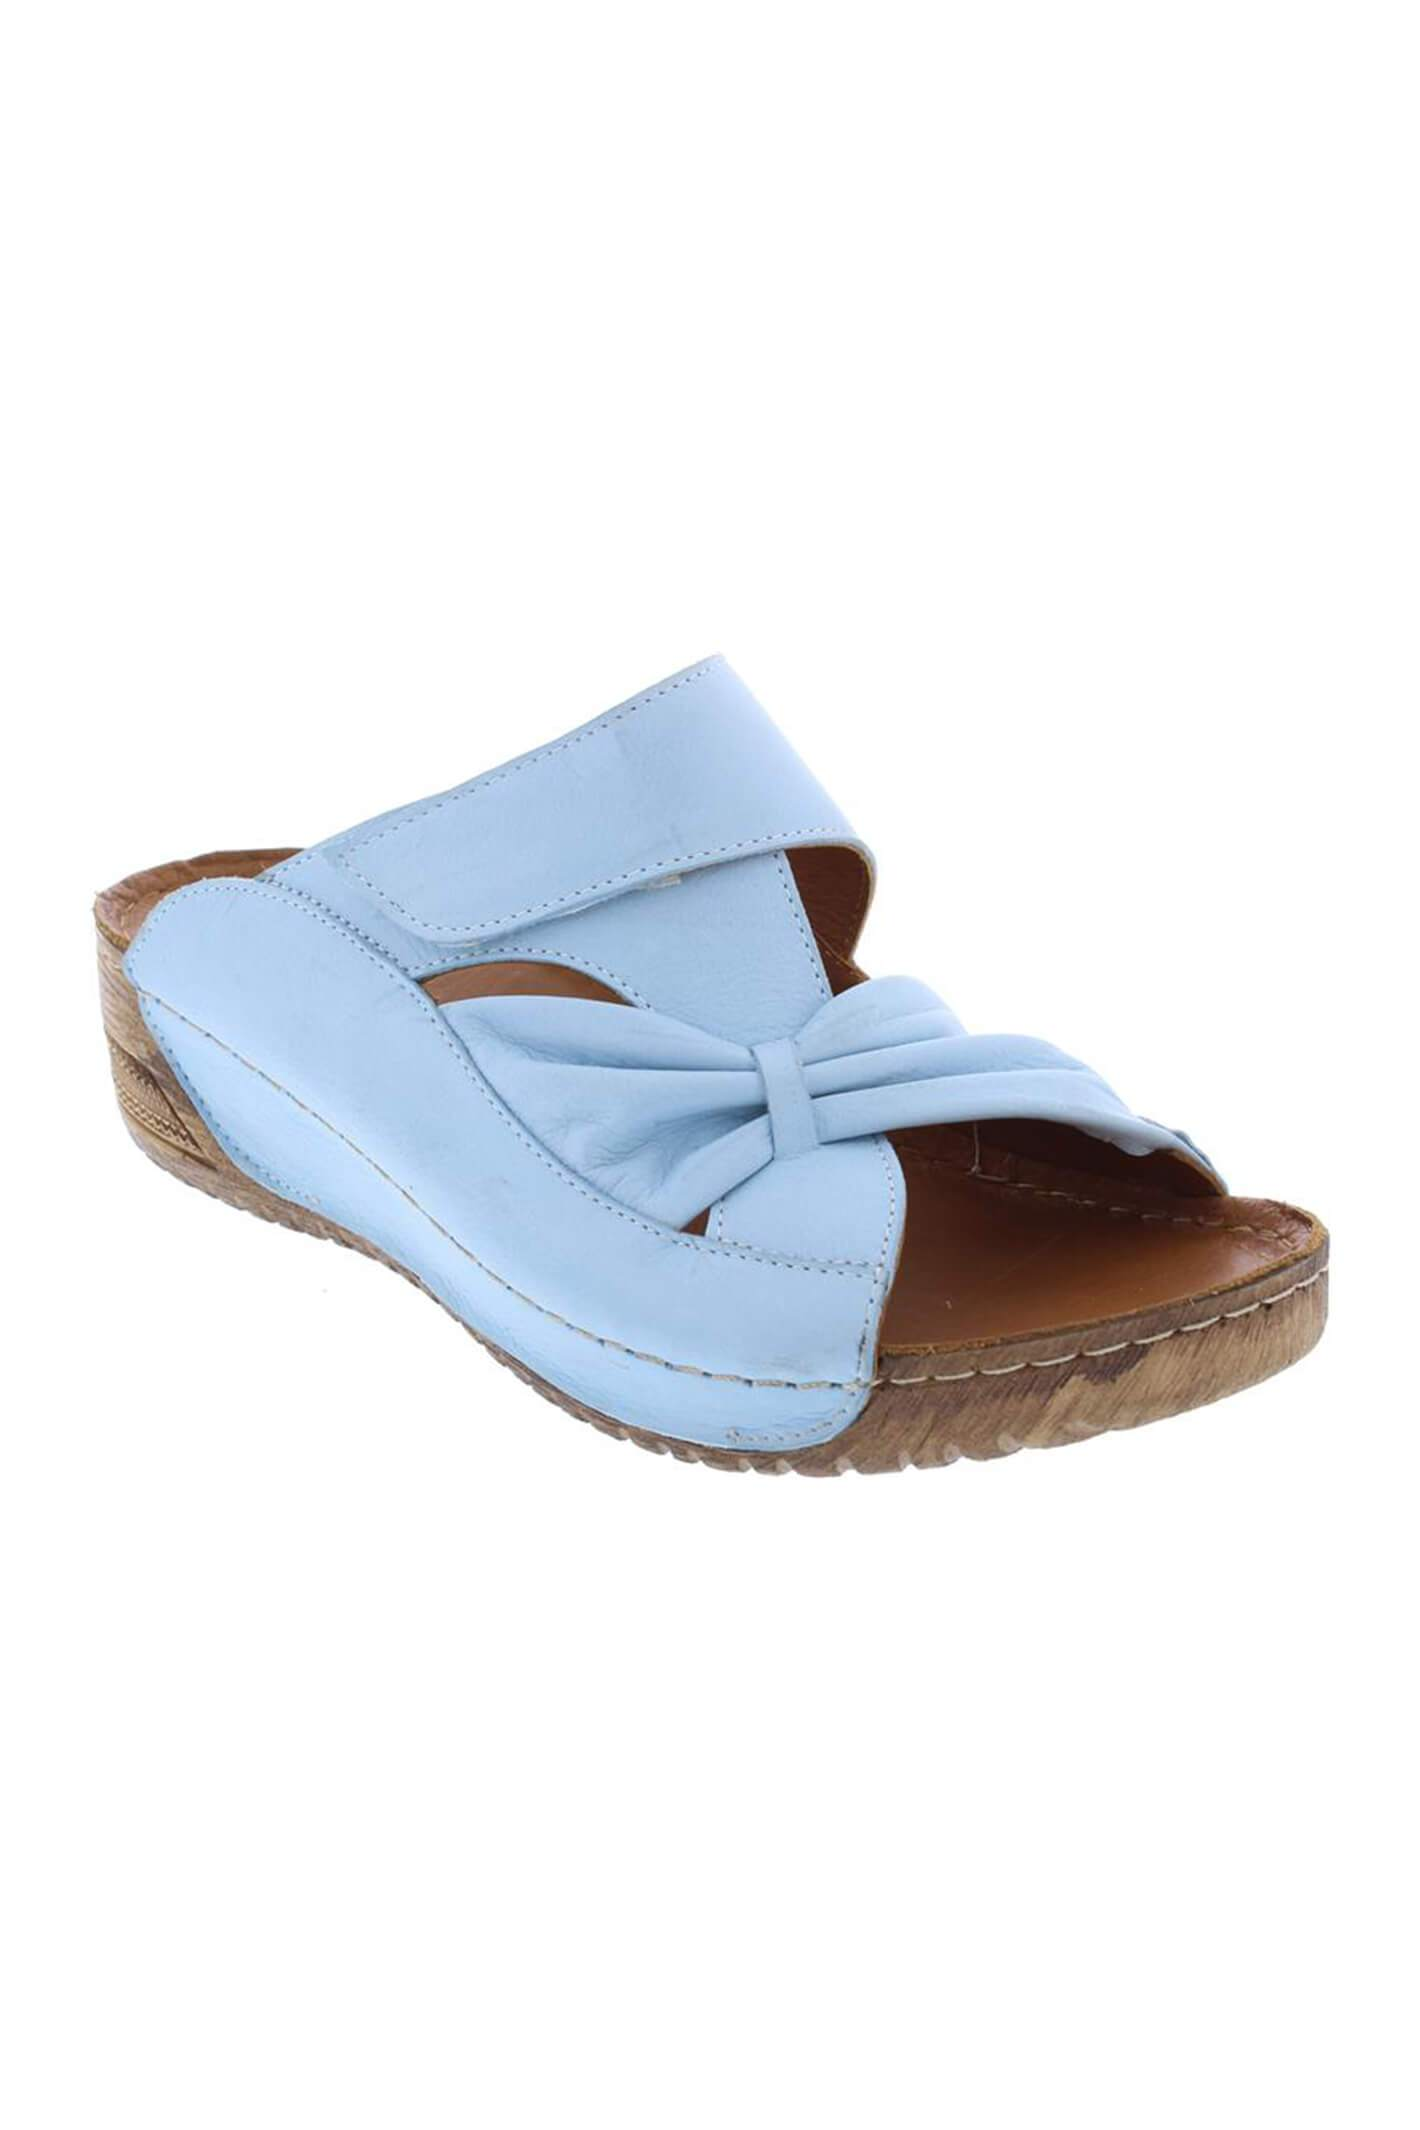 Adesso A6055 Lexi Soft Blue Bow Leather Mule 38 R